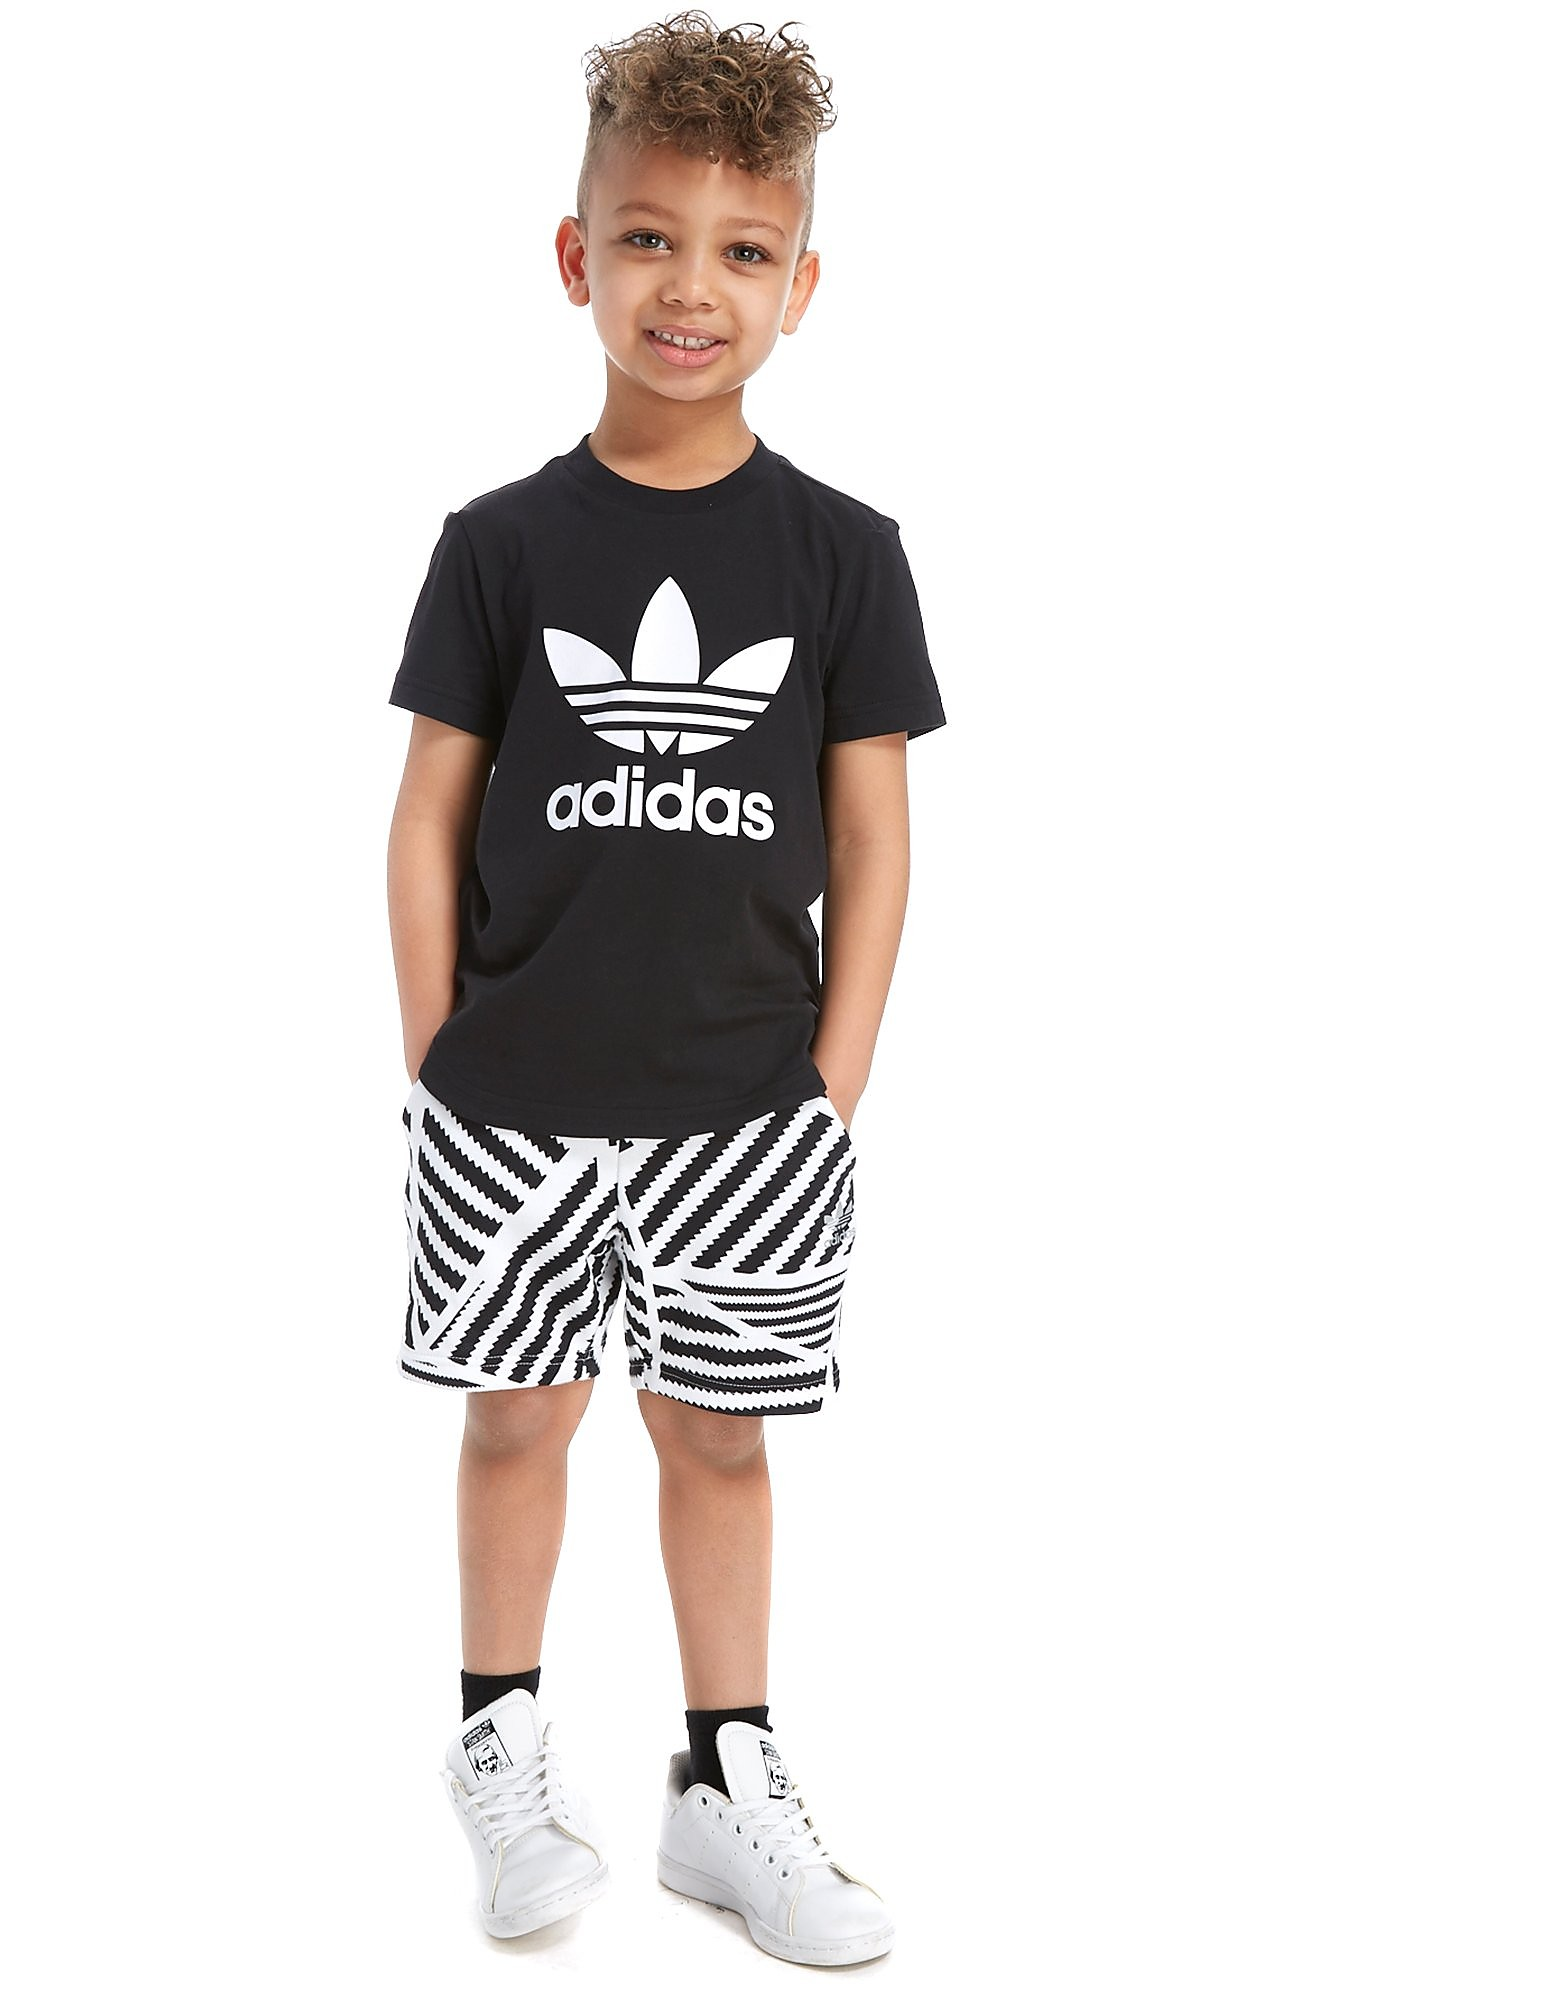 adidas Originals Print T-Shirt & Shorts Set Children's